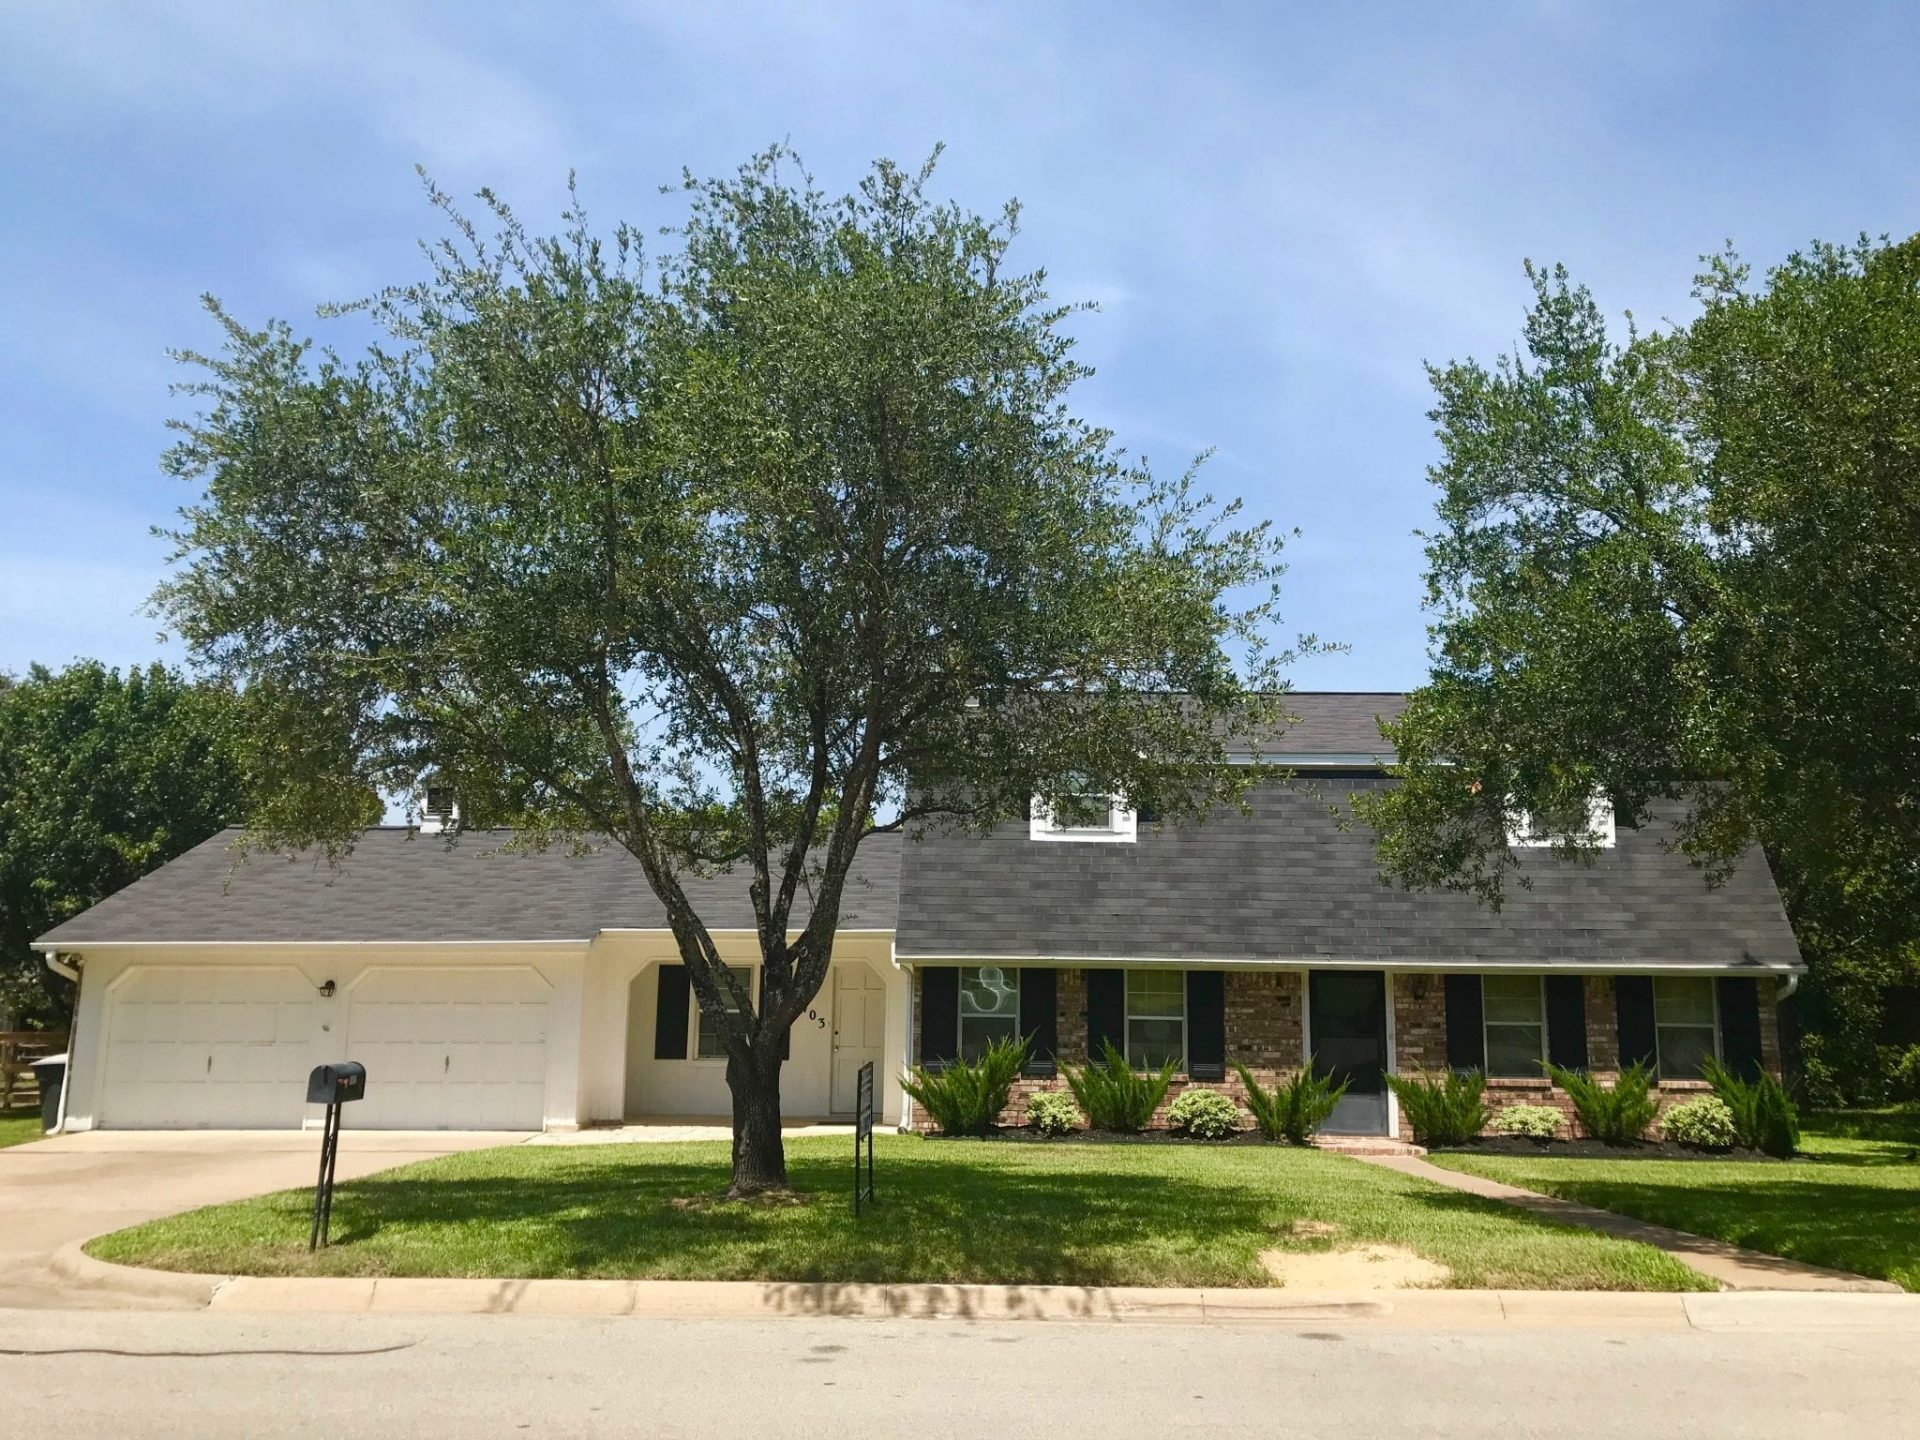 4 bedroom and 3 bedroom houses in Southside…